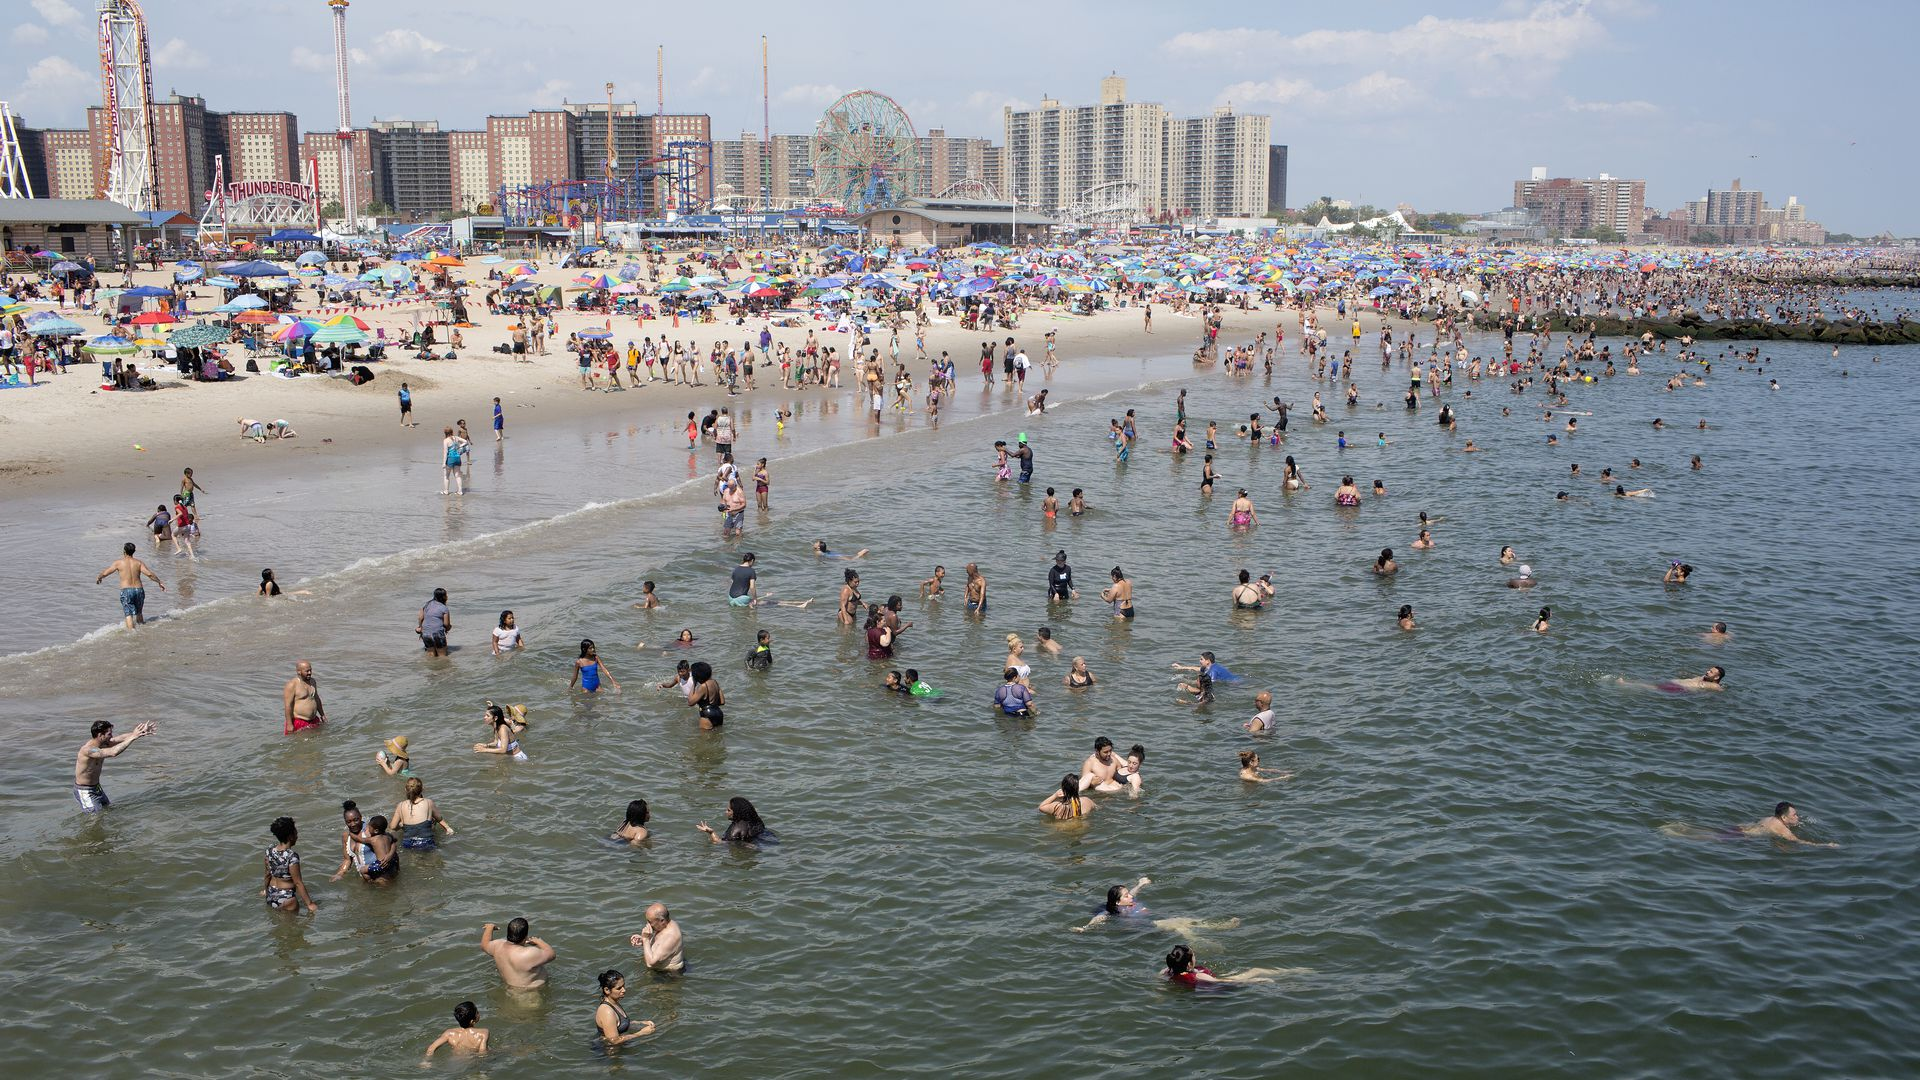 As a heat wave descends upon New York, people seek refuge from the record high temperatures at the beach in Coney Island on July 20, 2019 in New York City.